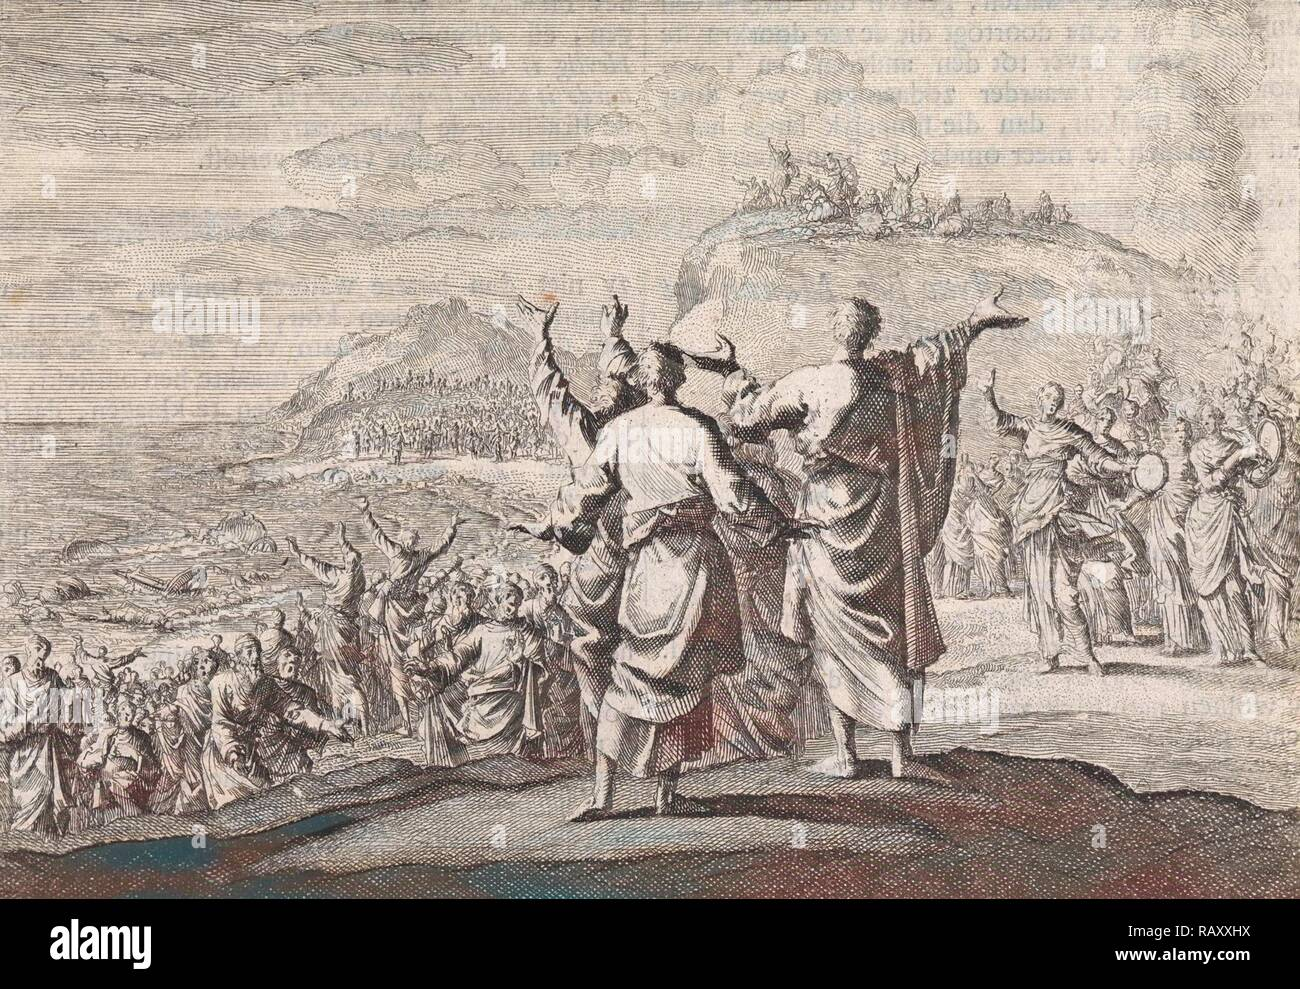 Celebrating the fall of the Egyptian army, Jan Luyken, Pieter Mortier, 1703 - 1762. Reimagined by Gibon. Classic art reimagined - Stock Image